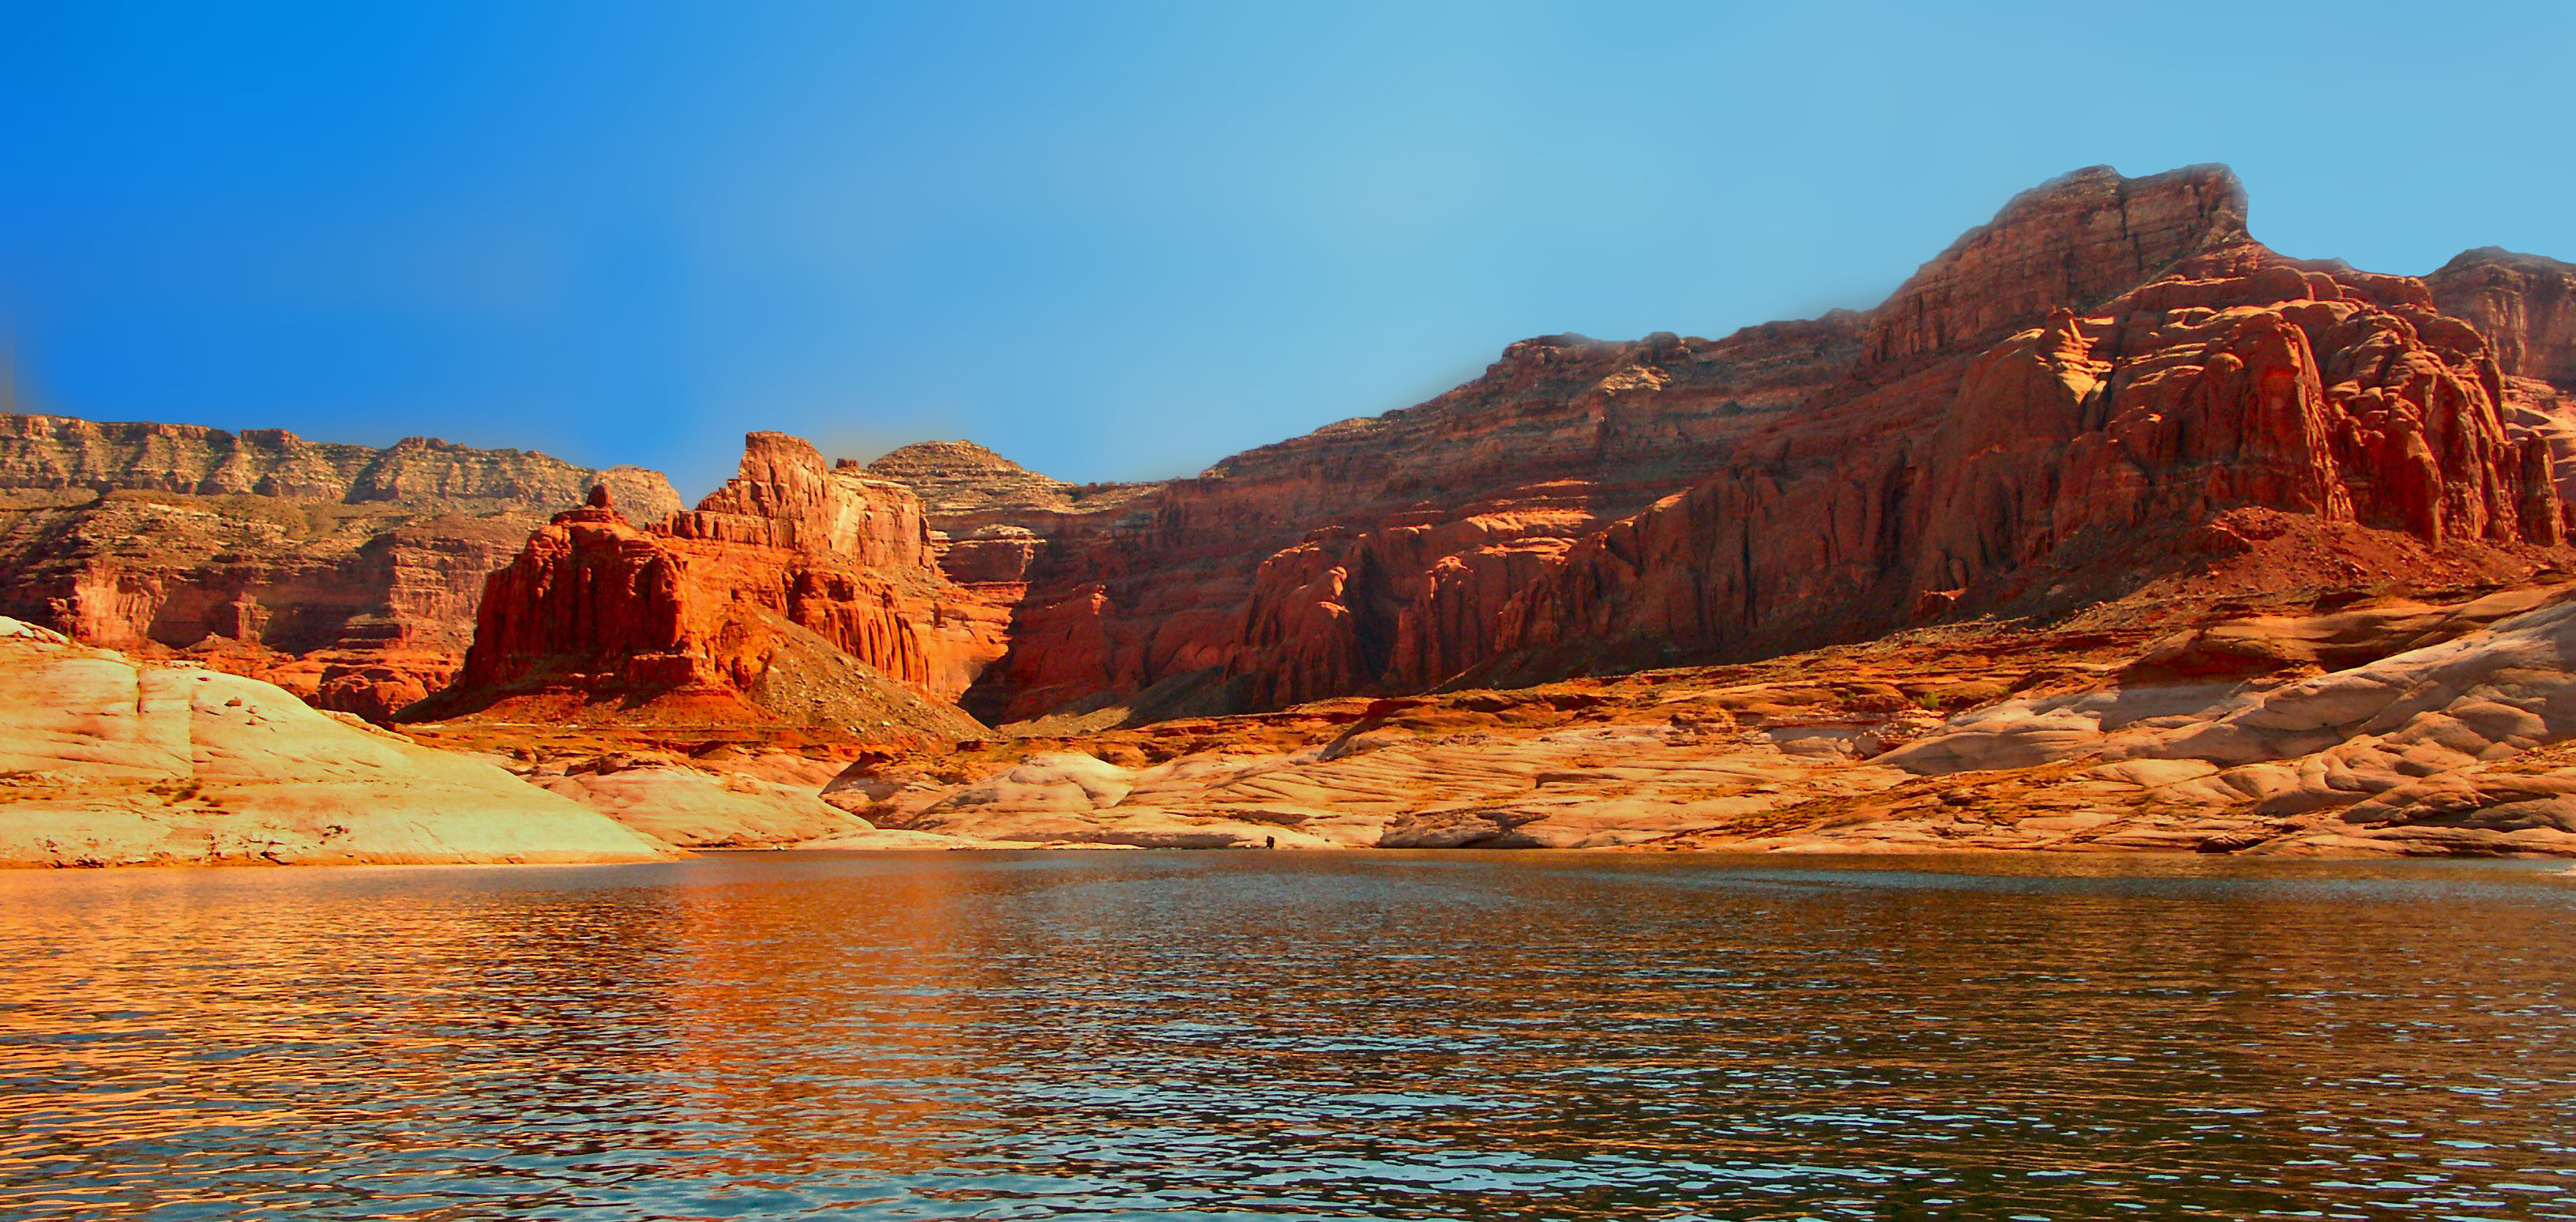 lake powell dating site Some 3 million people from around the world visit the lake powell and page, arizona area annually the average 4-5 day length of stay is the longest of any federal park the crystal-clear lake.